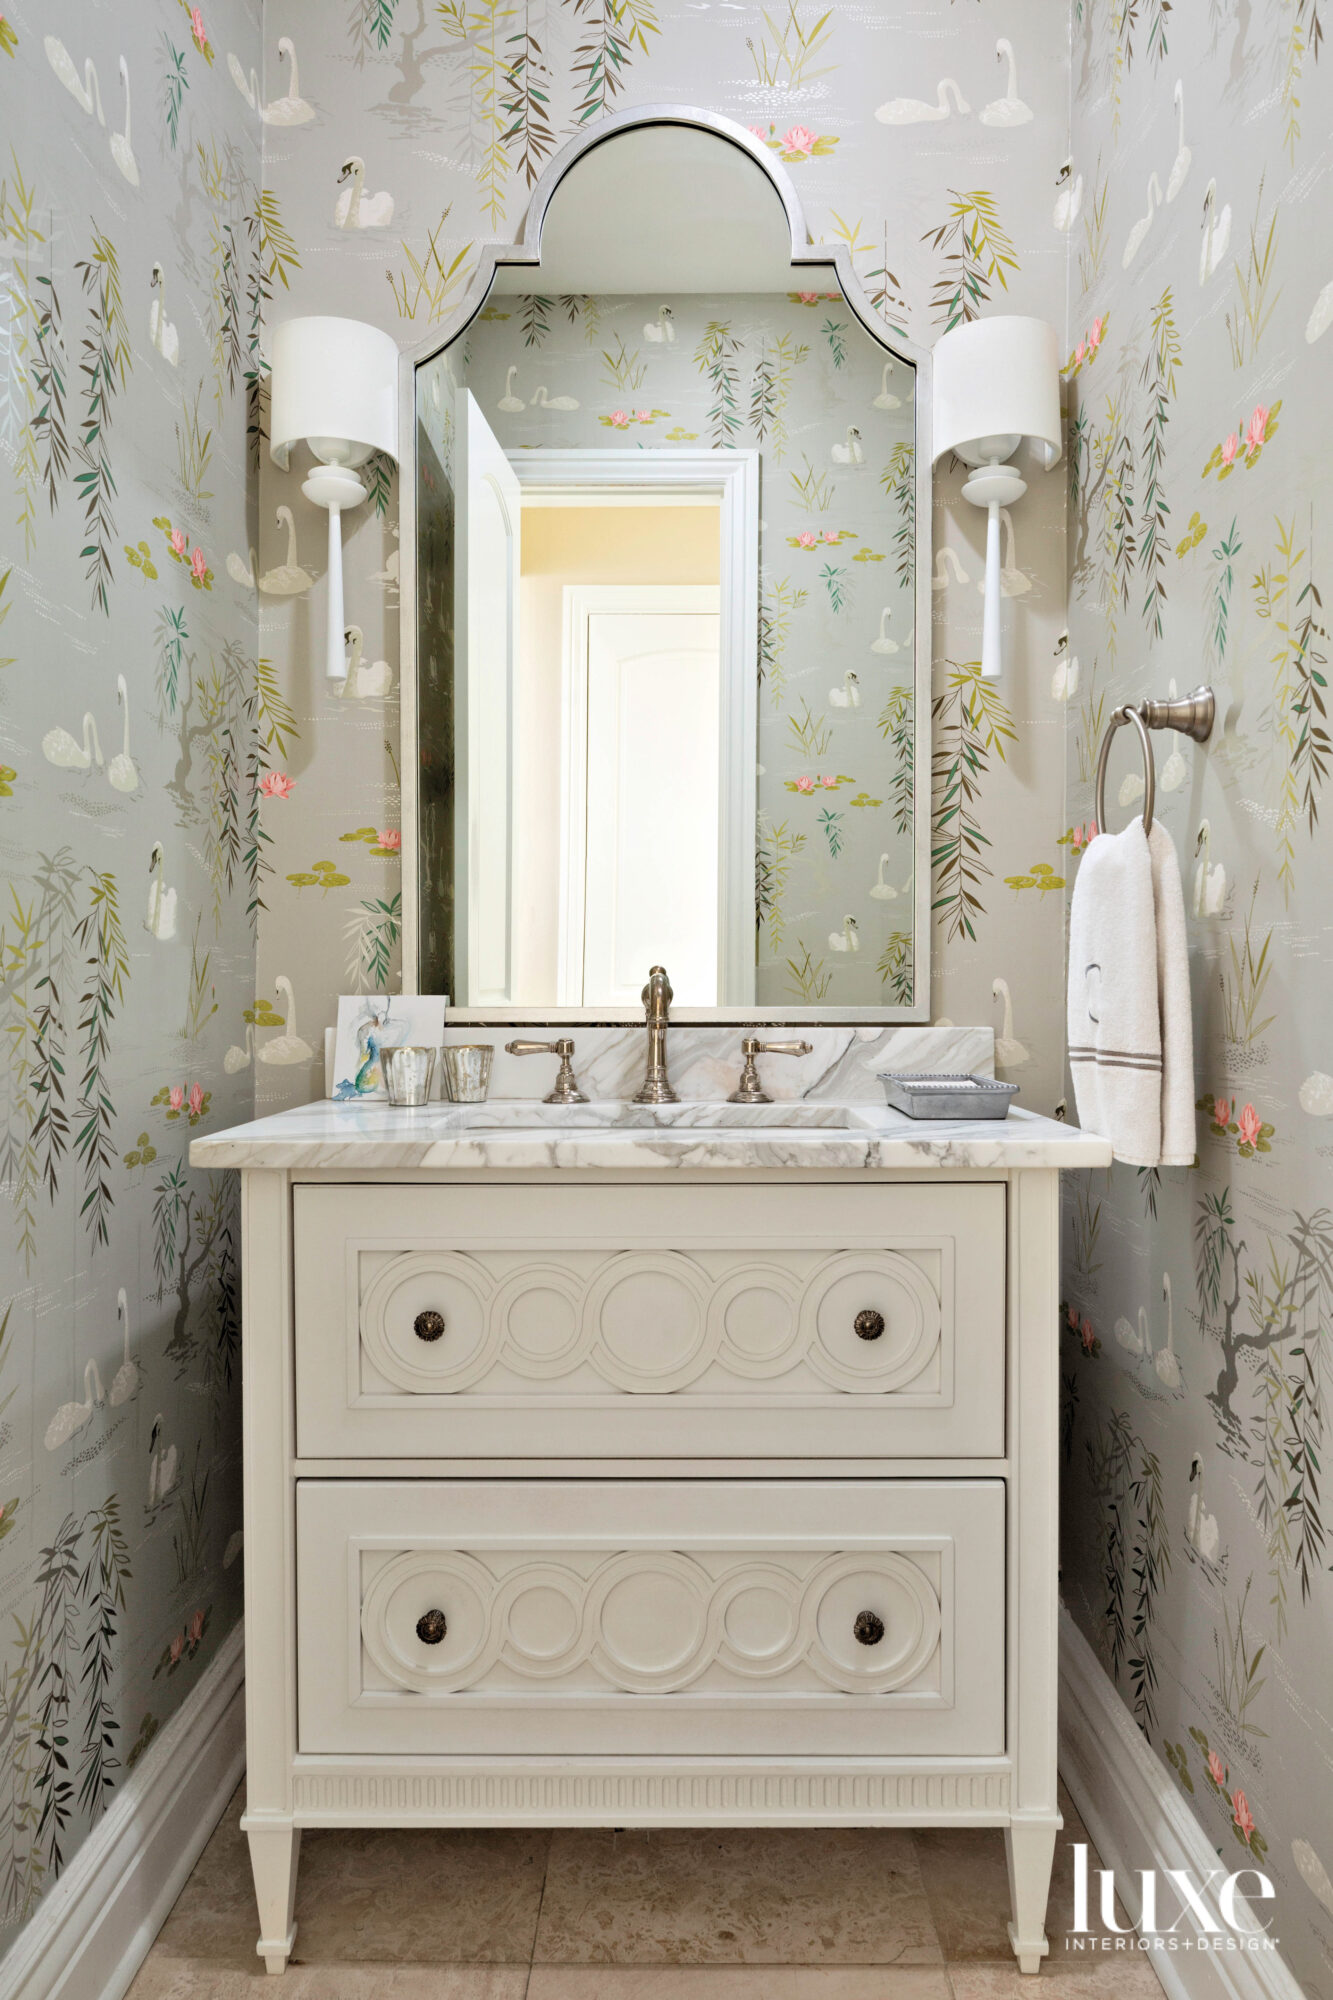 Powder bathroom with swan-patterned wallpaper...